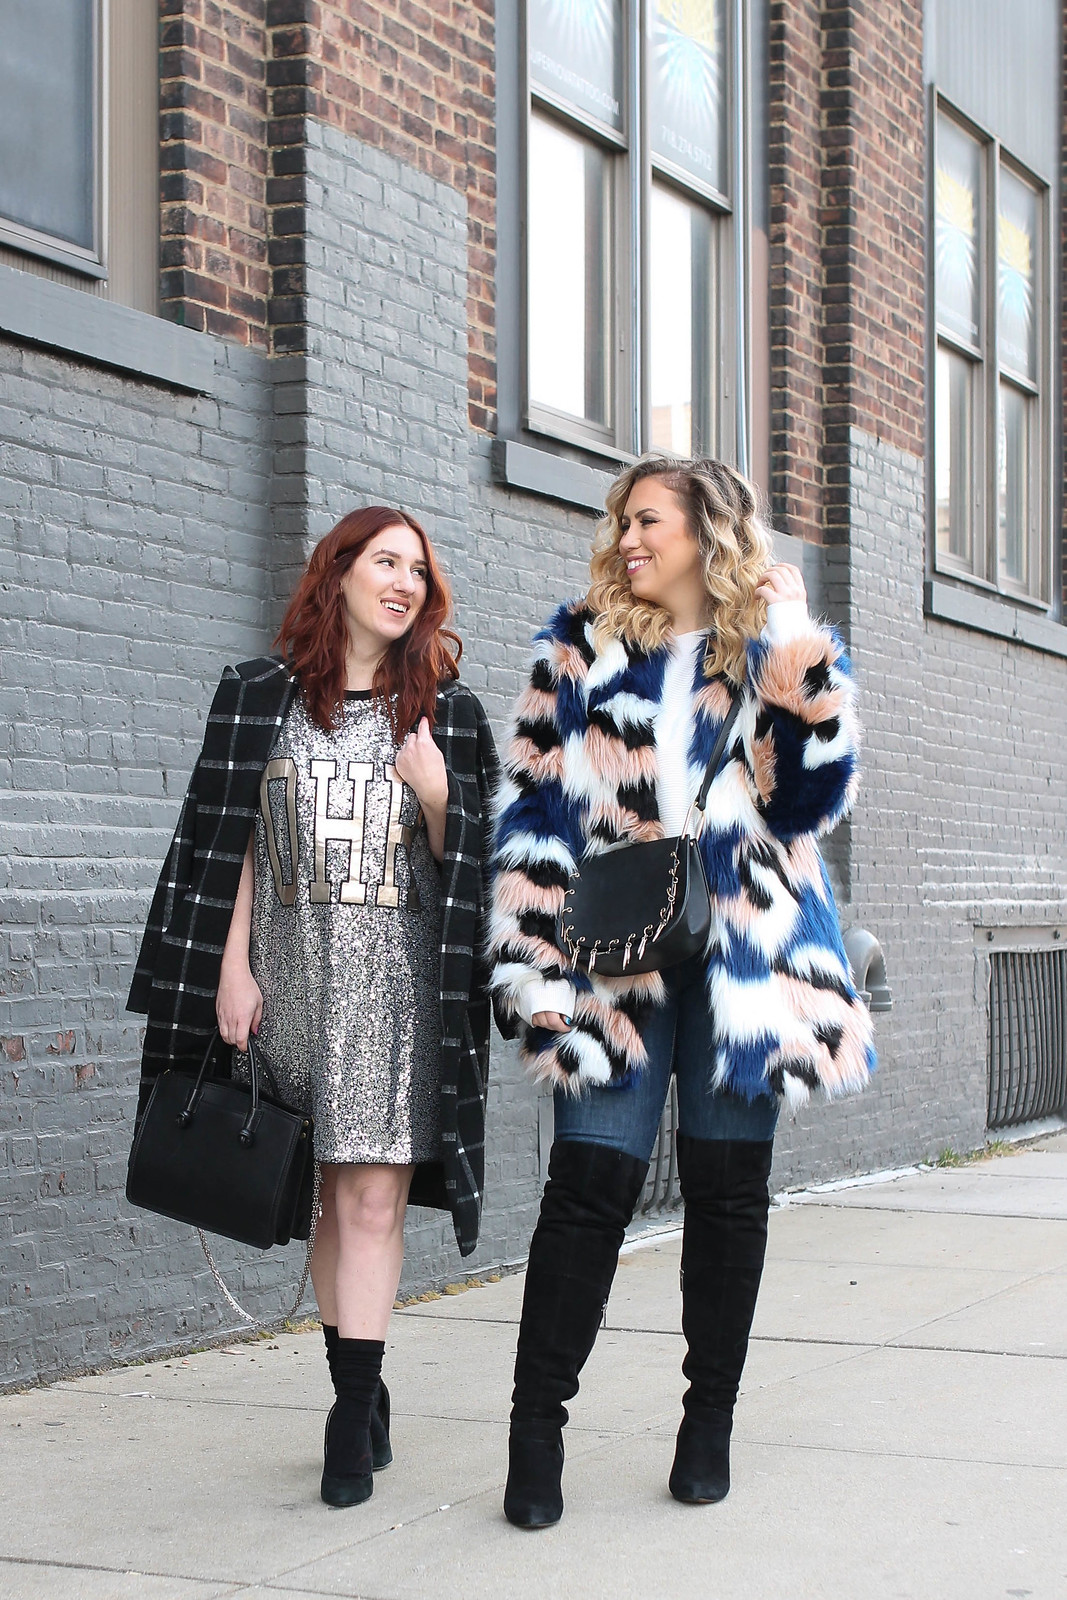 The Statement Pieces You Should Have In Your Closet Sequin Dress Colorful Faux Fur Coat New York Blogger Street Style